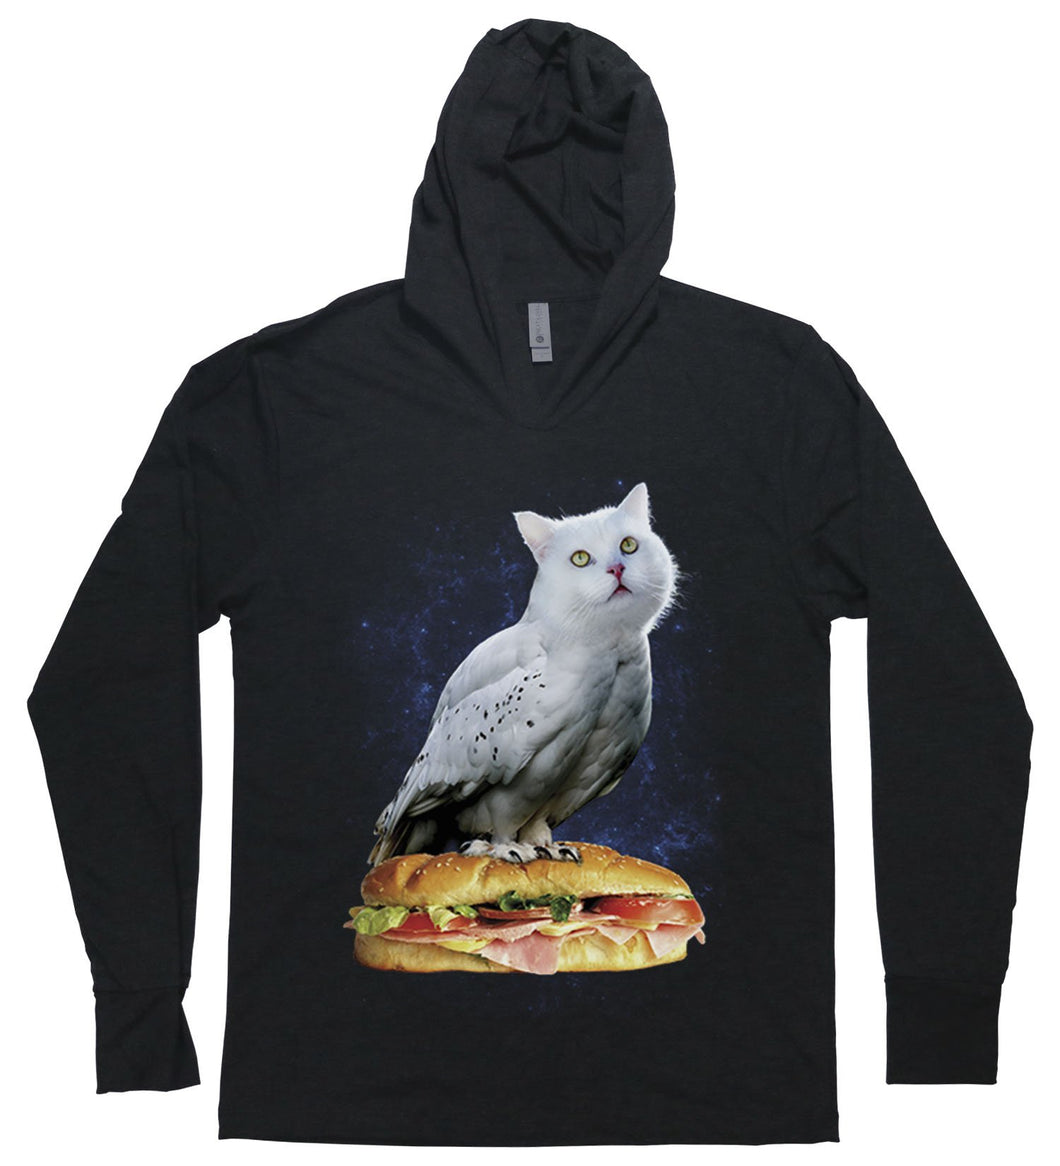 An owl with a cat head or a cat with an owl body sitting atop a sub sandwich